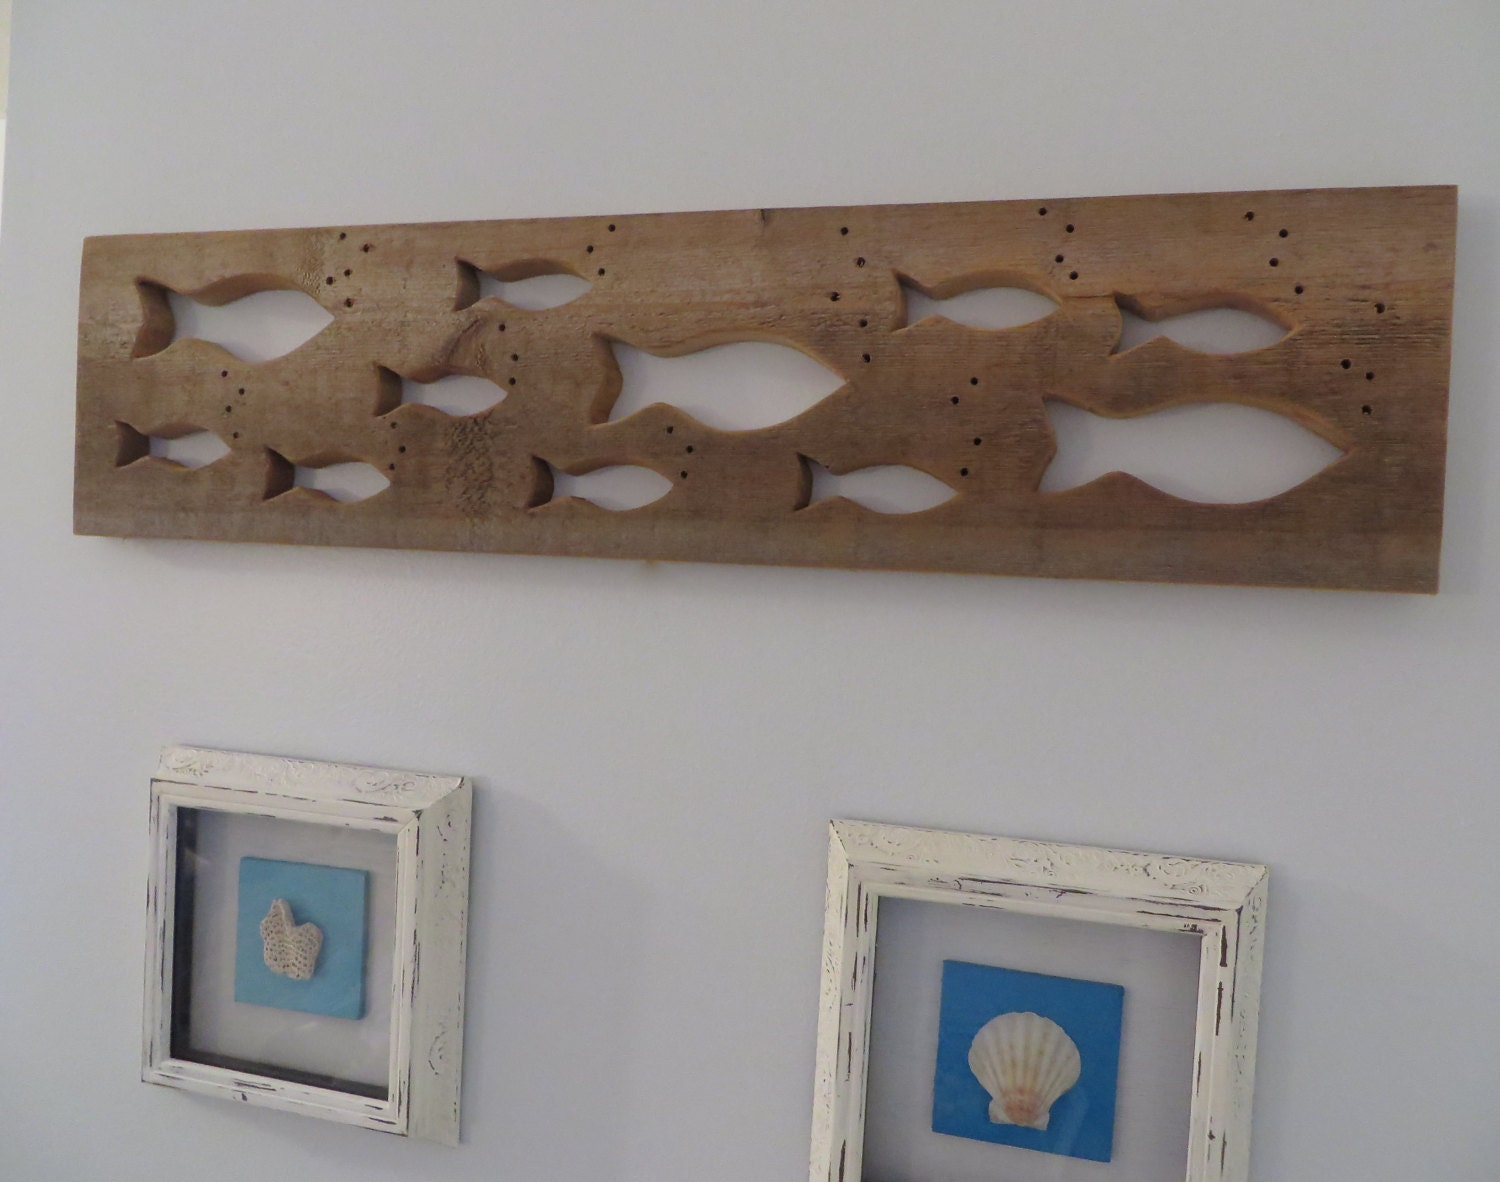 Fish Wall Decor Wood : Fish wall decor on reclaimed cedar wood board by alterednature